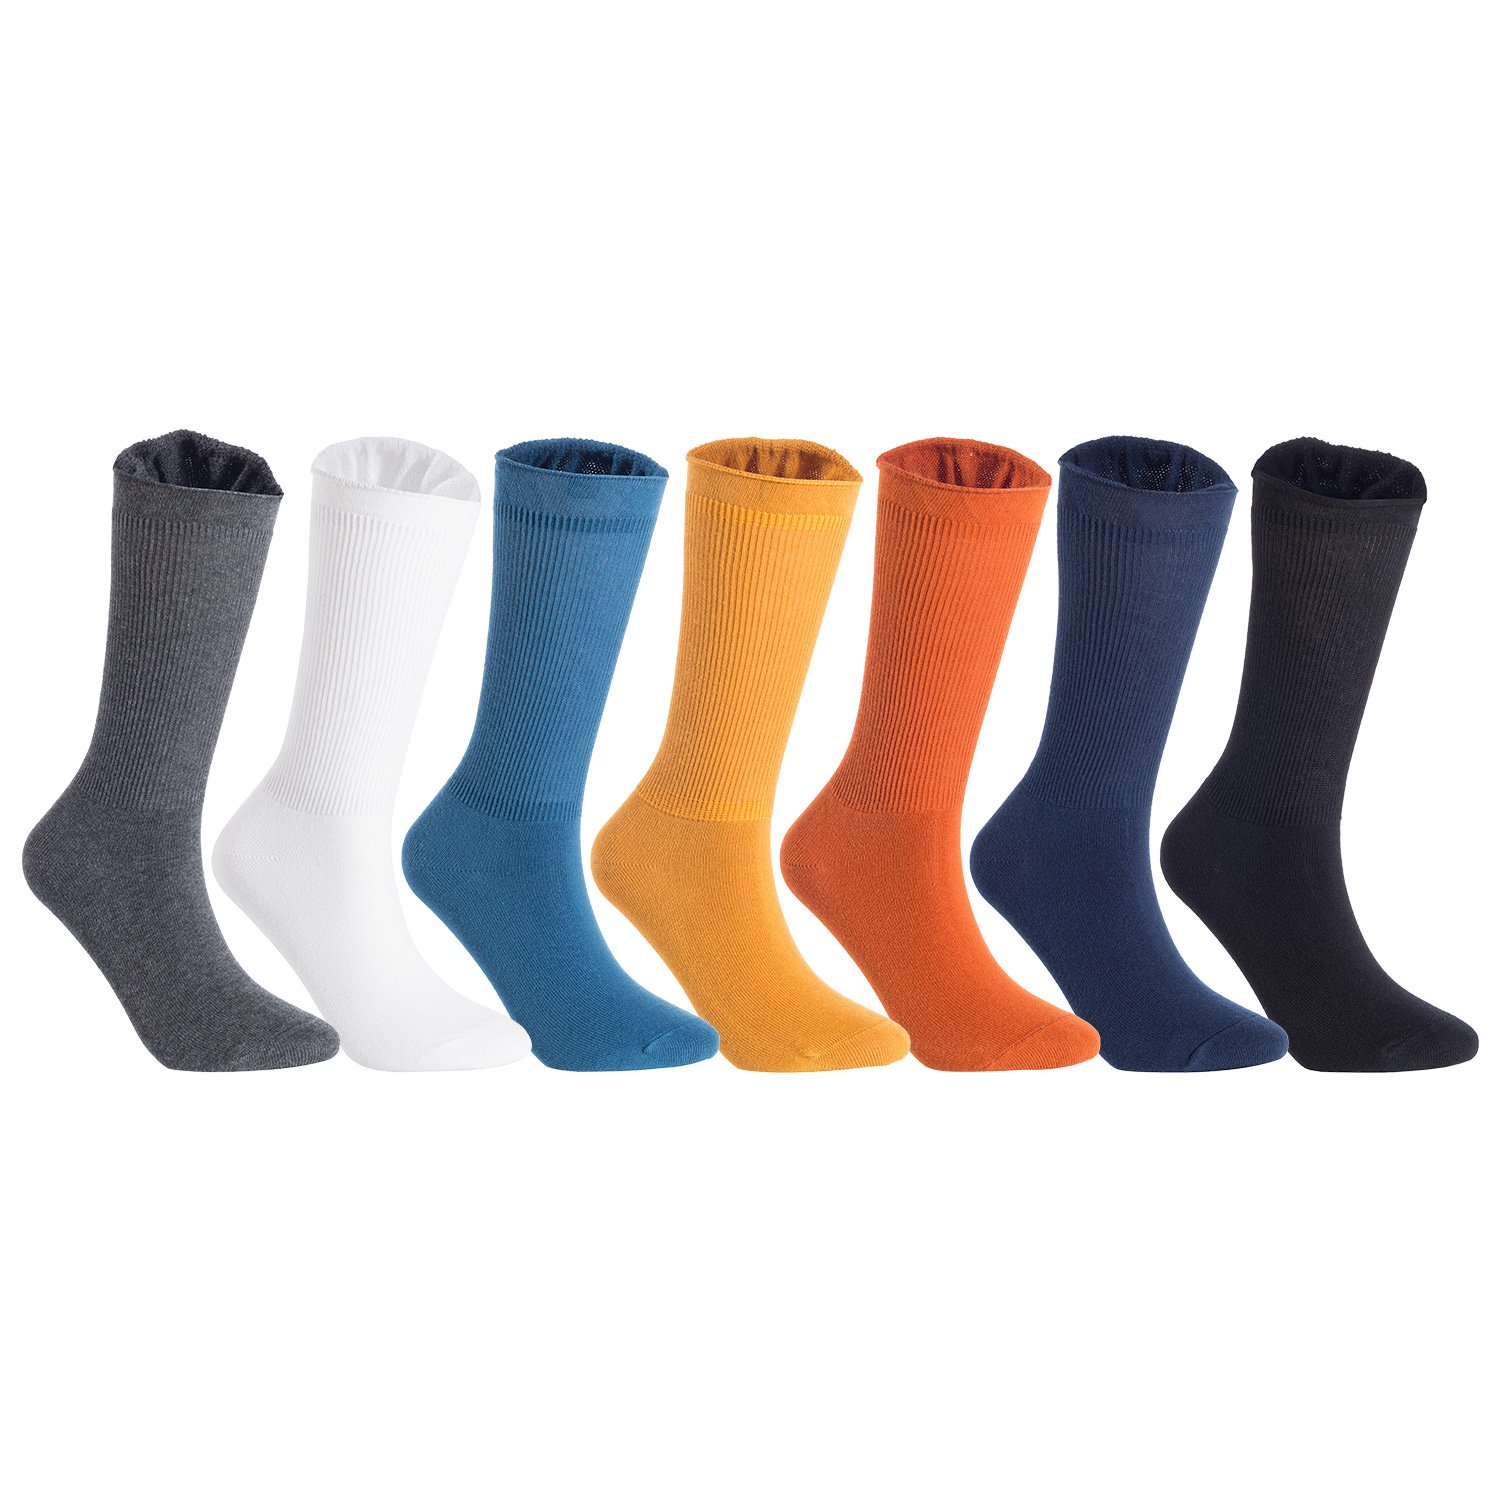 Lian LifeStyle Big Girl's 6 Pairs Cotton Blend High Crew Socks Solid HR1791 Casual Size L/XL 6 Colors